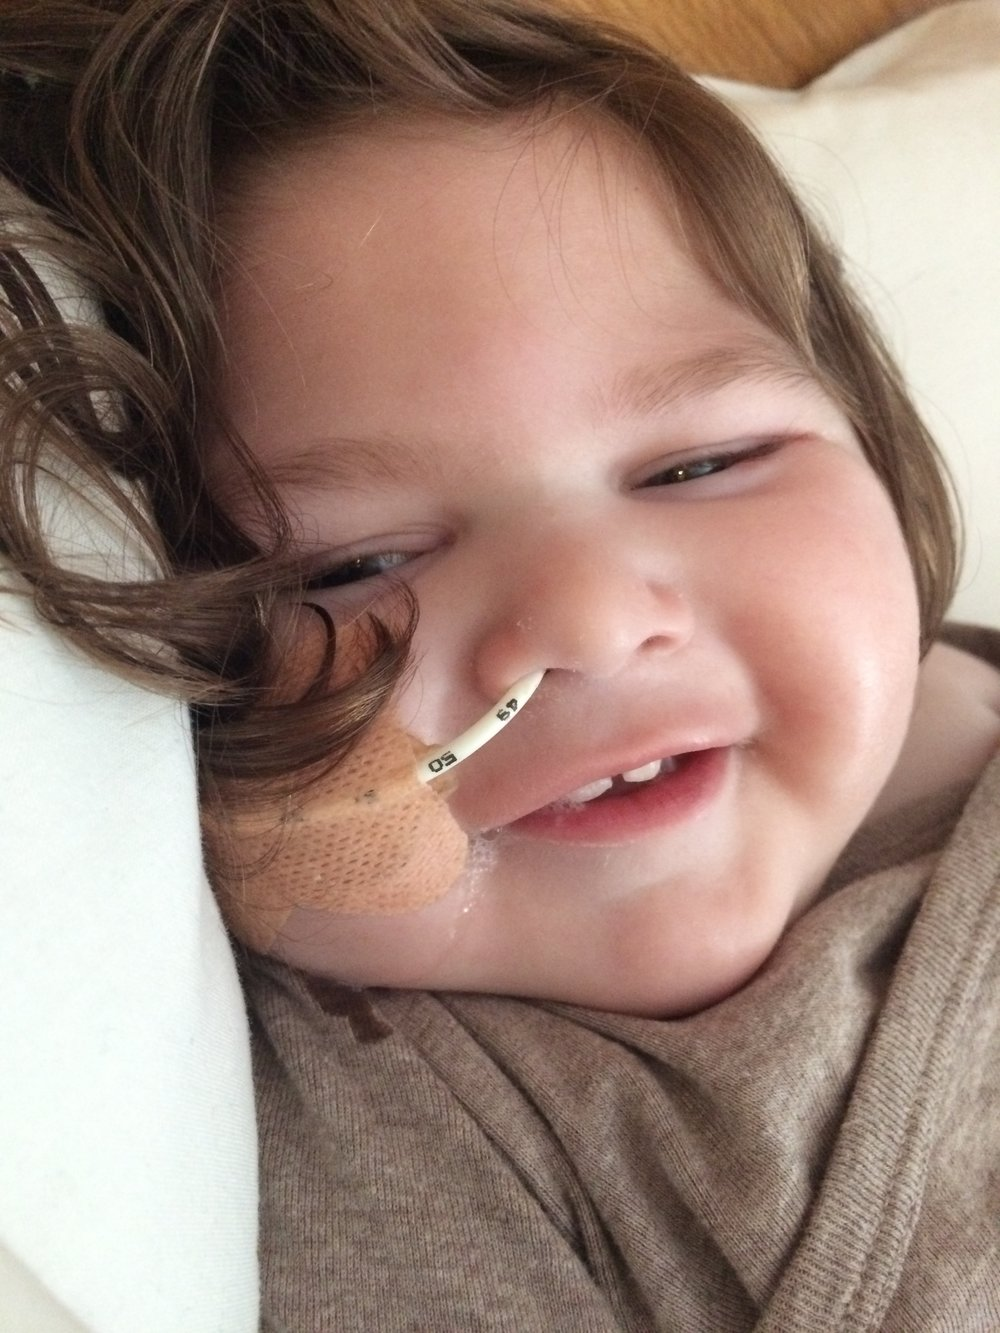 Tube feeding saved my little boy who can't swallow safely anymore - Leonie #AliLissencephely